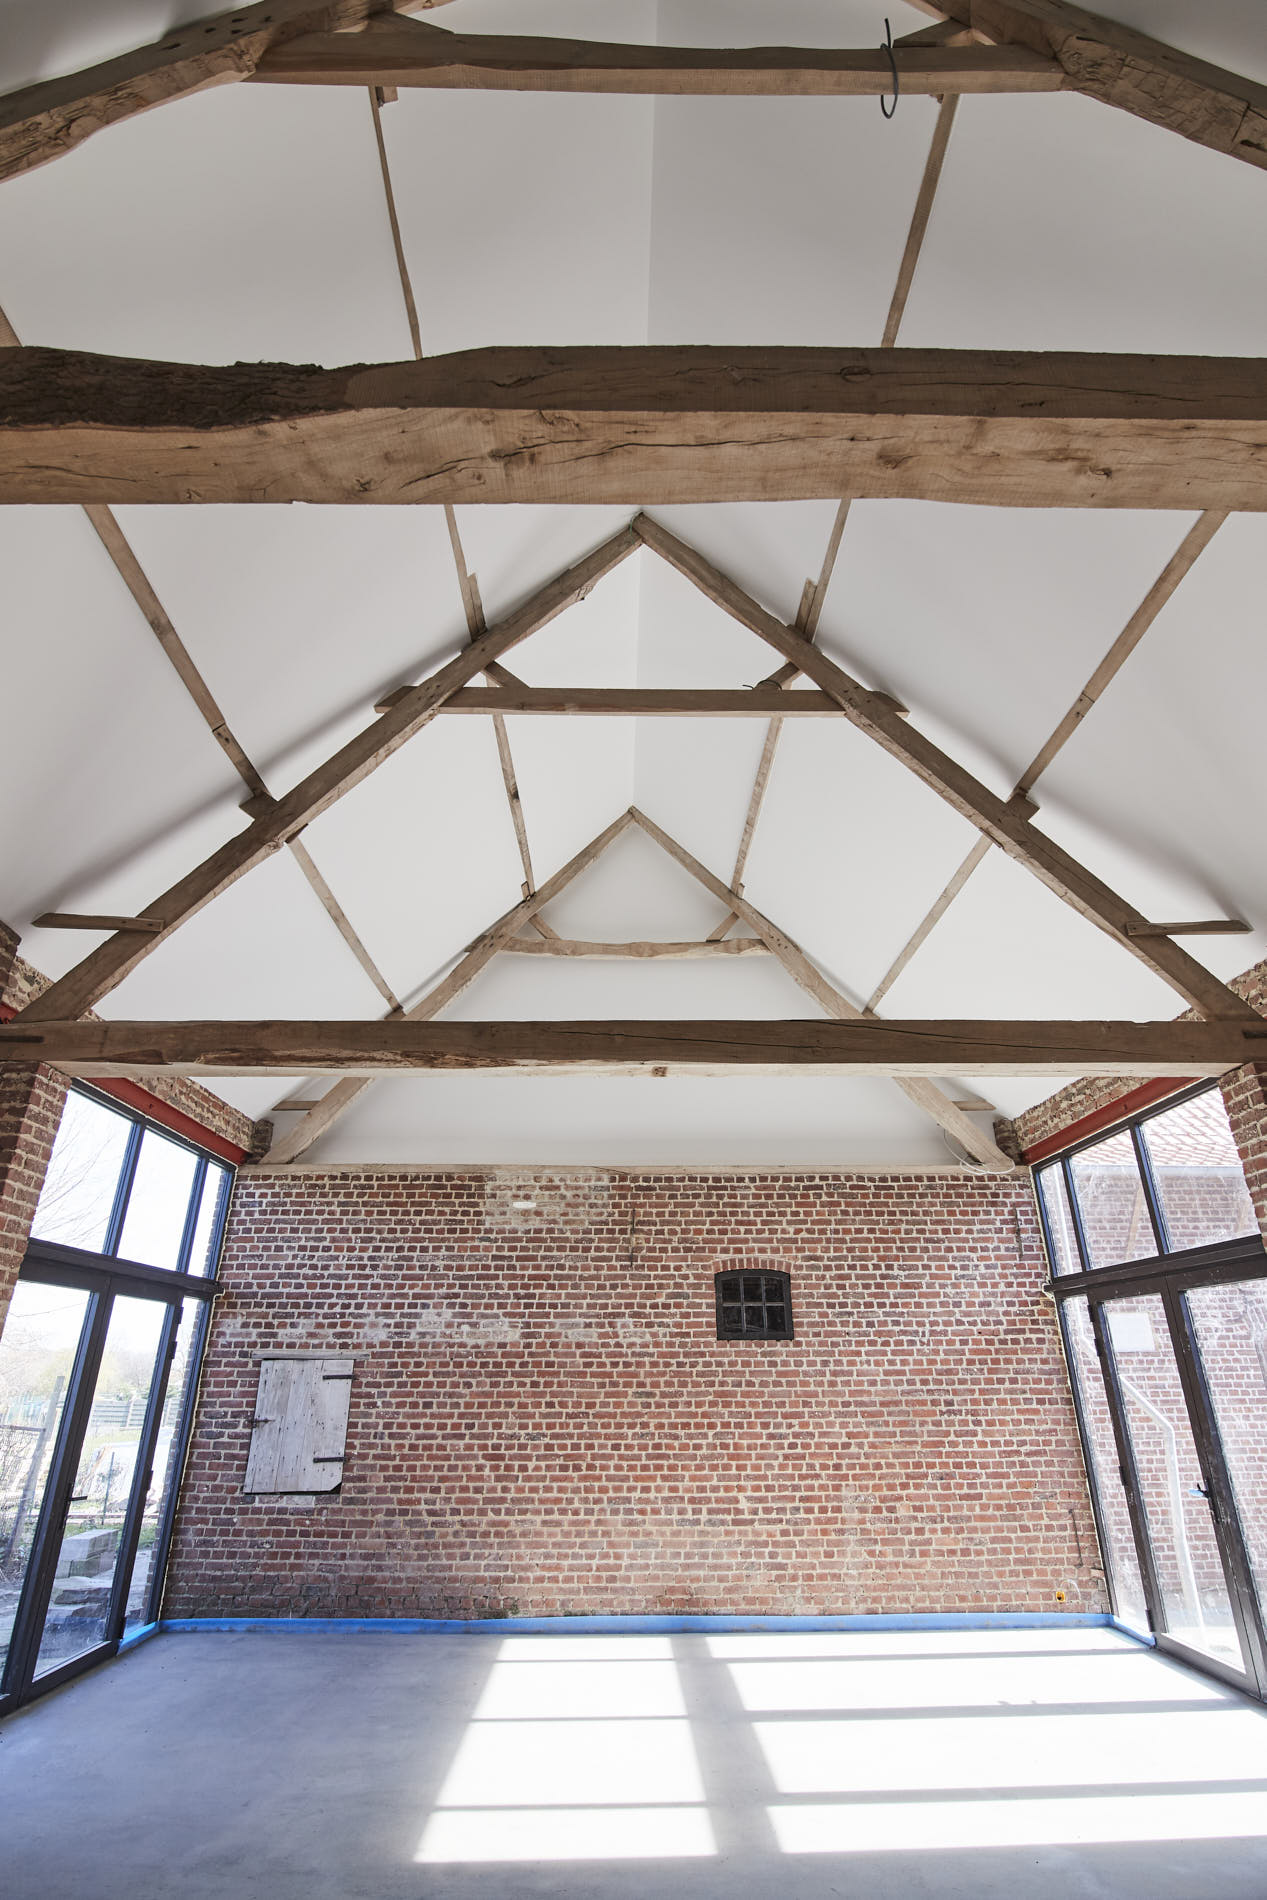 photostudio with wood roof structure and large windows